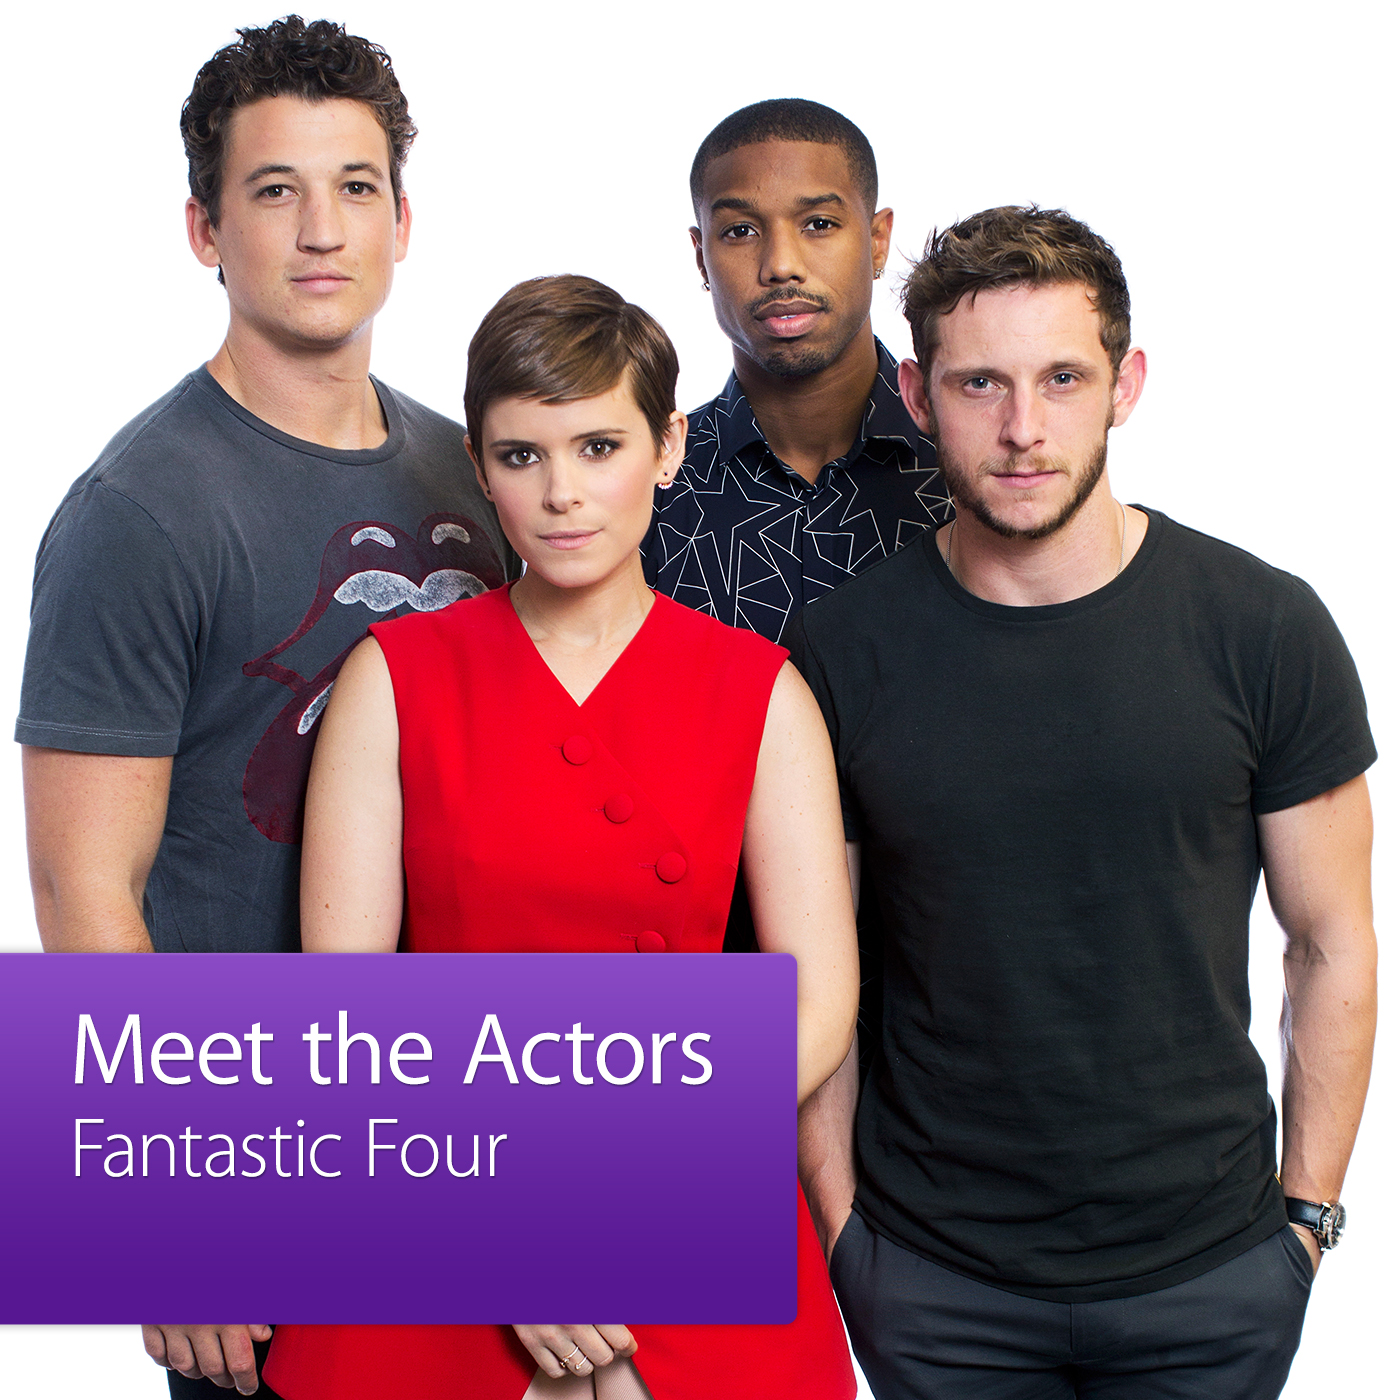 Fantastic Four: Meet the Actors